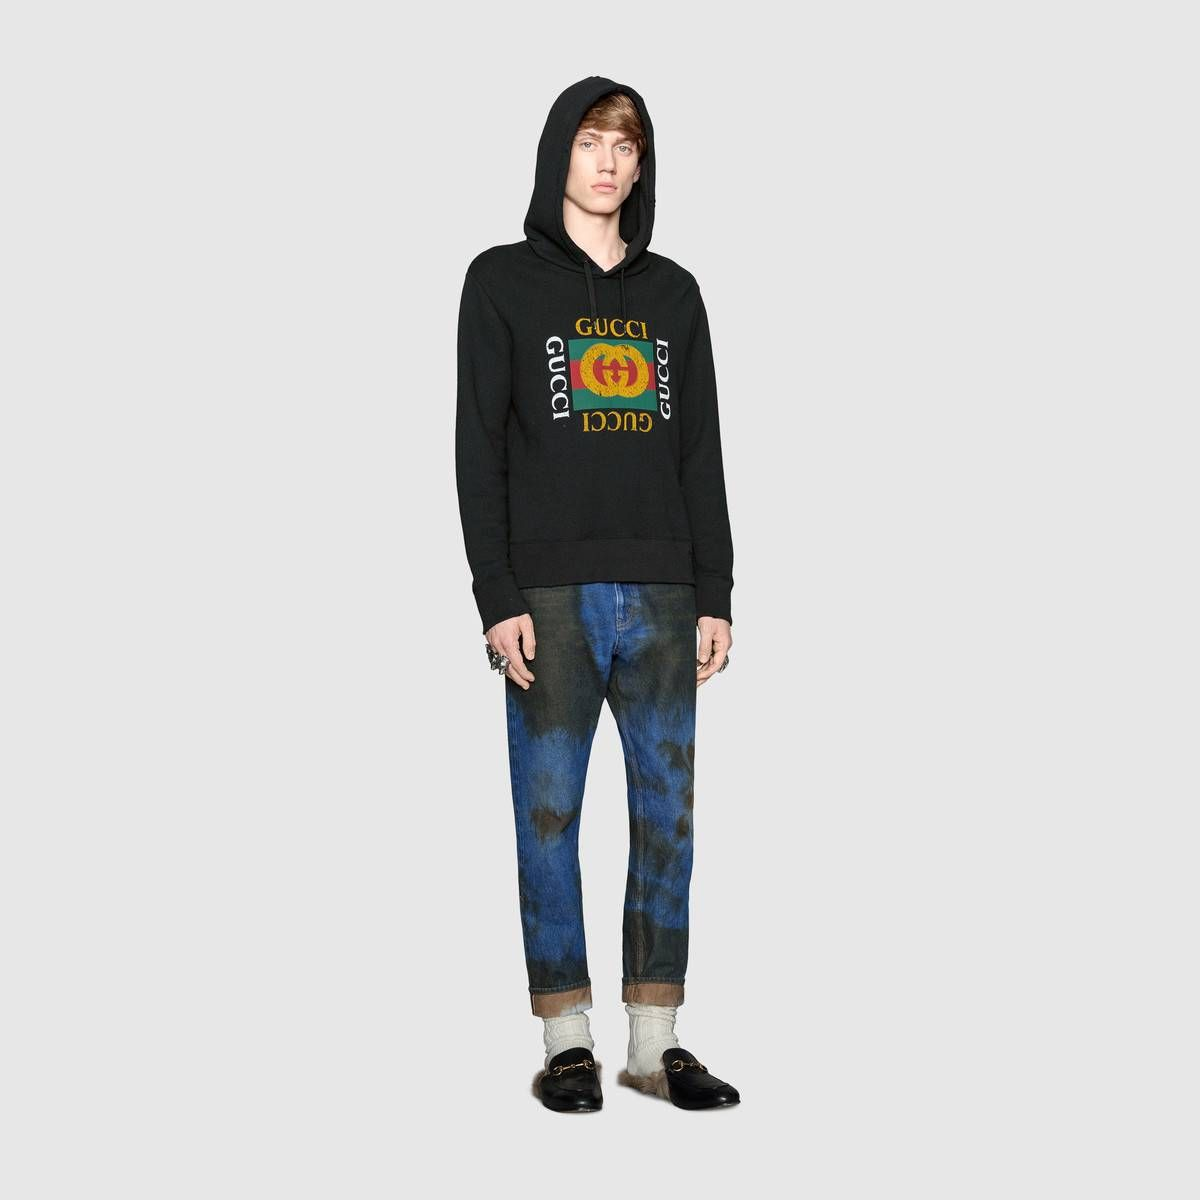 cac9cabff27 Shop the Oversize sweatshirt with Gucci logo by Gucci. Alessandro Michele  updates the Gucci vintage logo in an unexpected way